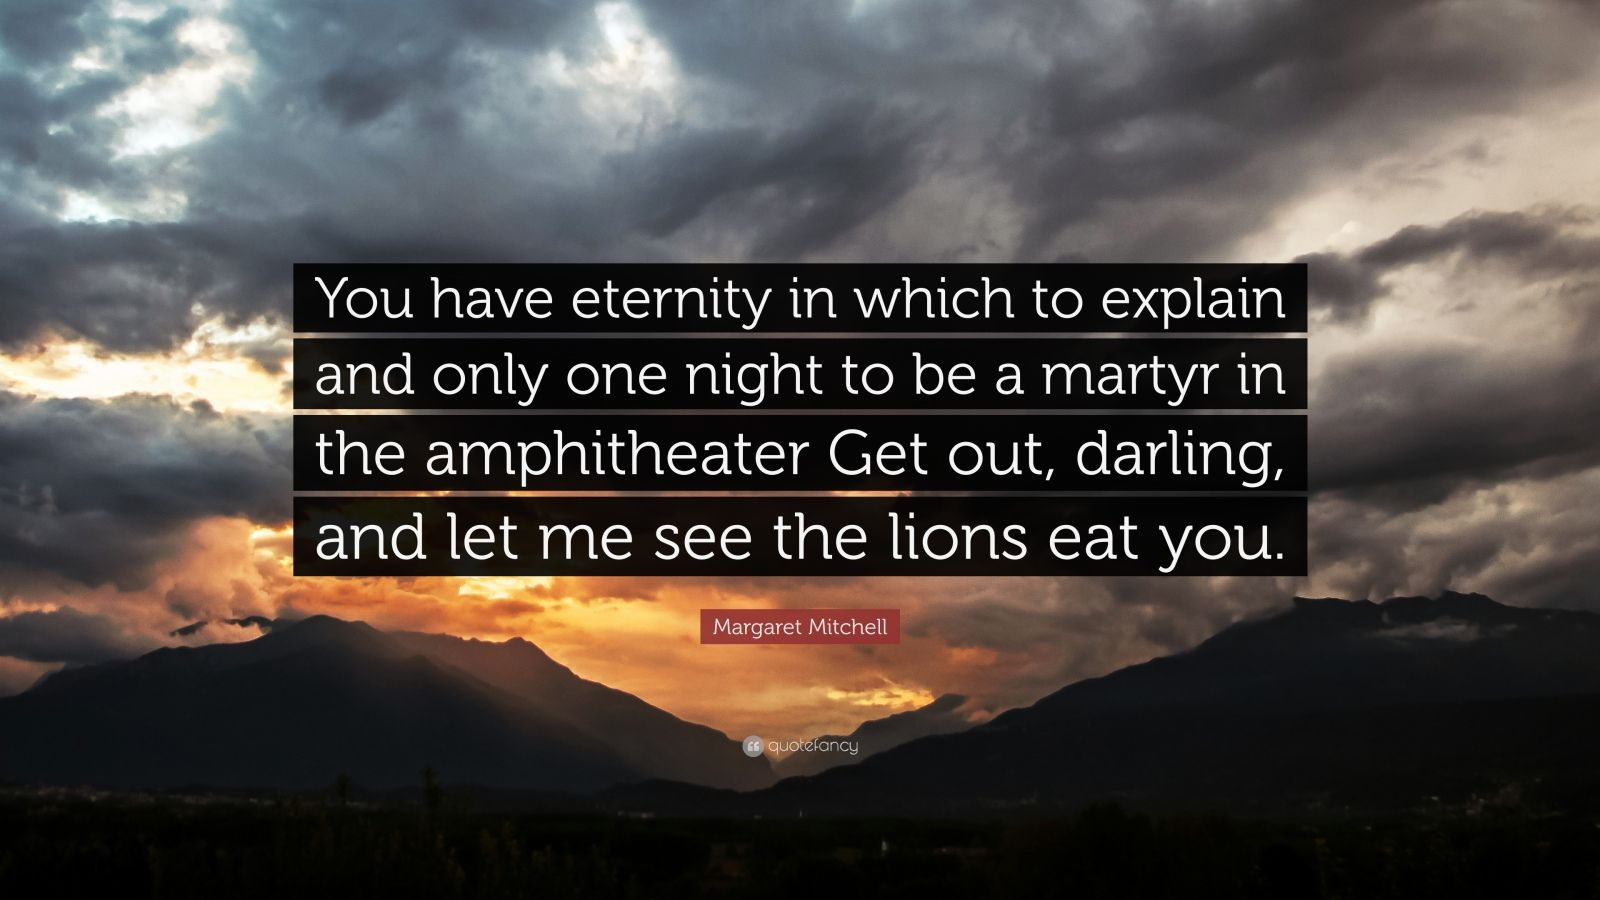 """Margaret Mitchell Quote: """"You have eternity in which to explain and only one night to be a martyr in the amphitheater Get out, darling, and let me see the lions eat you."""""""